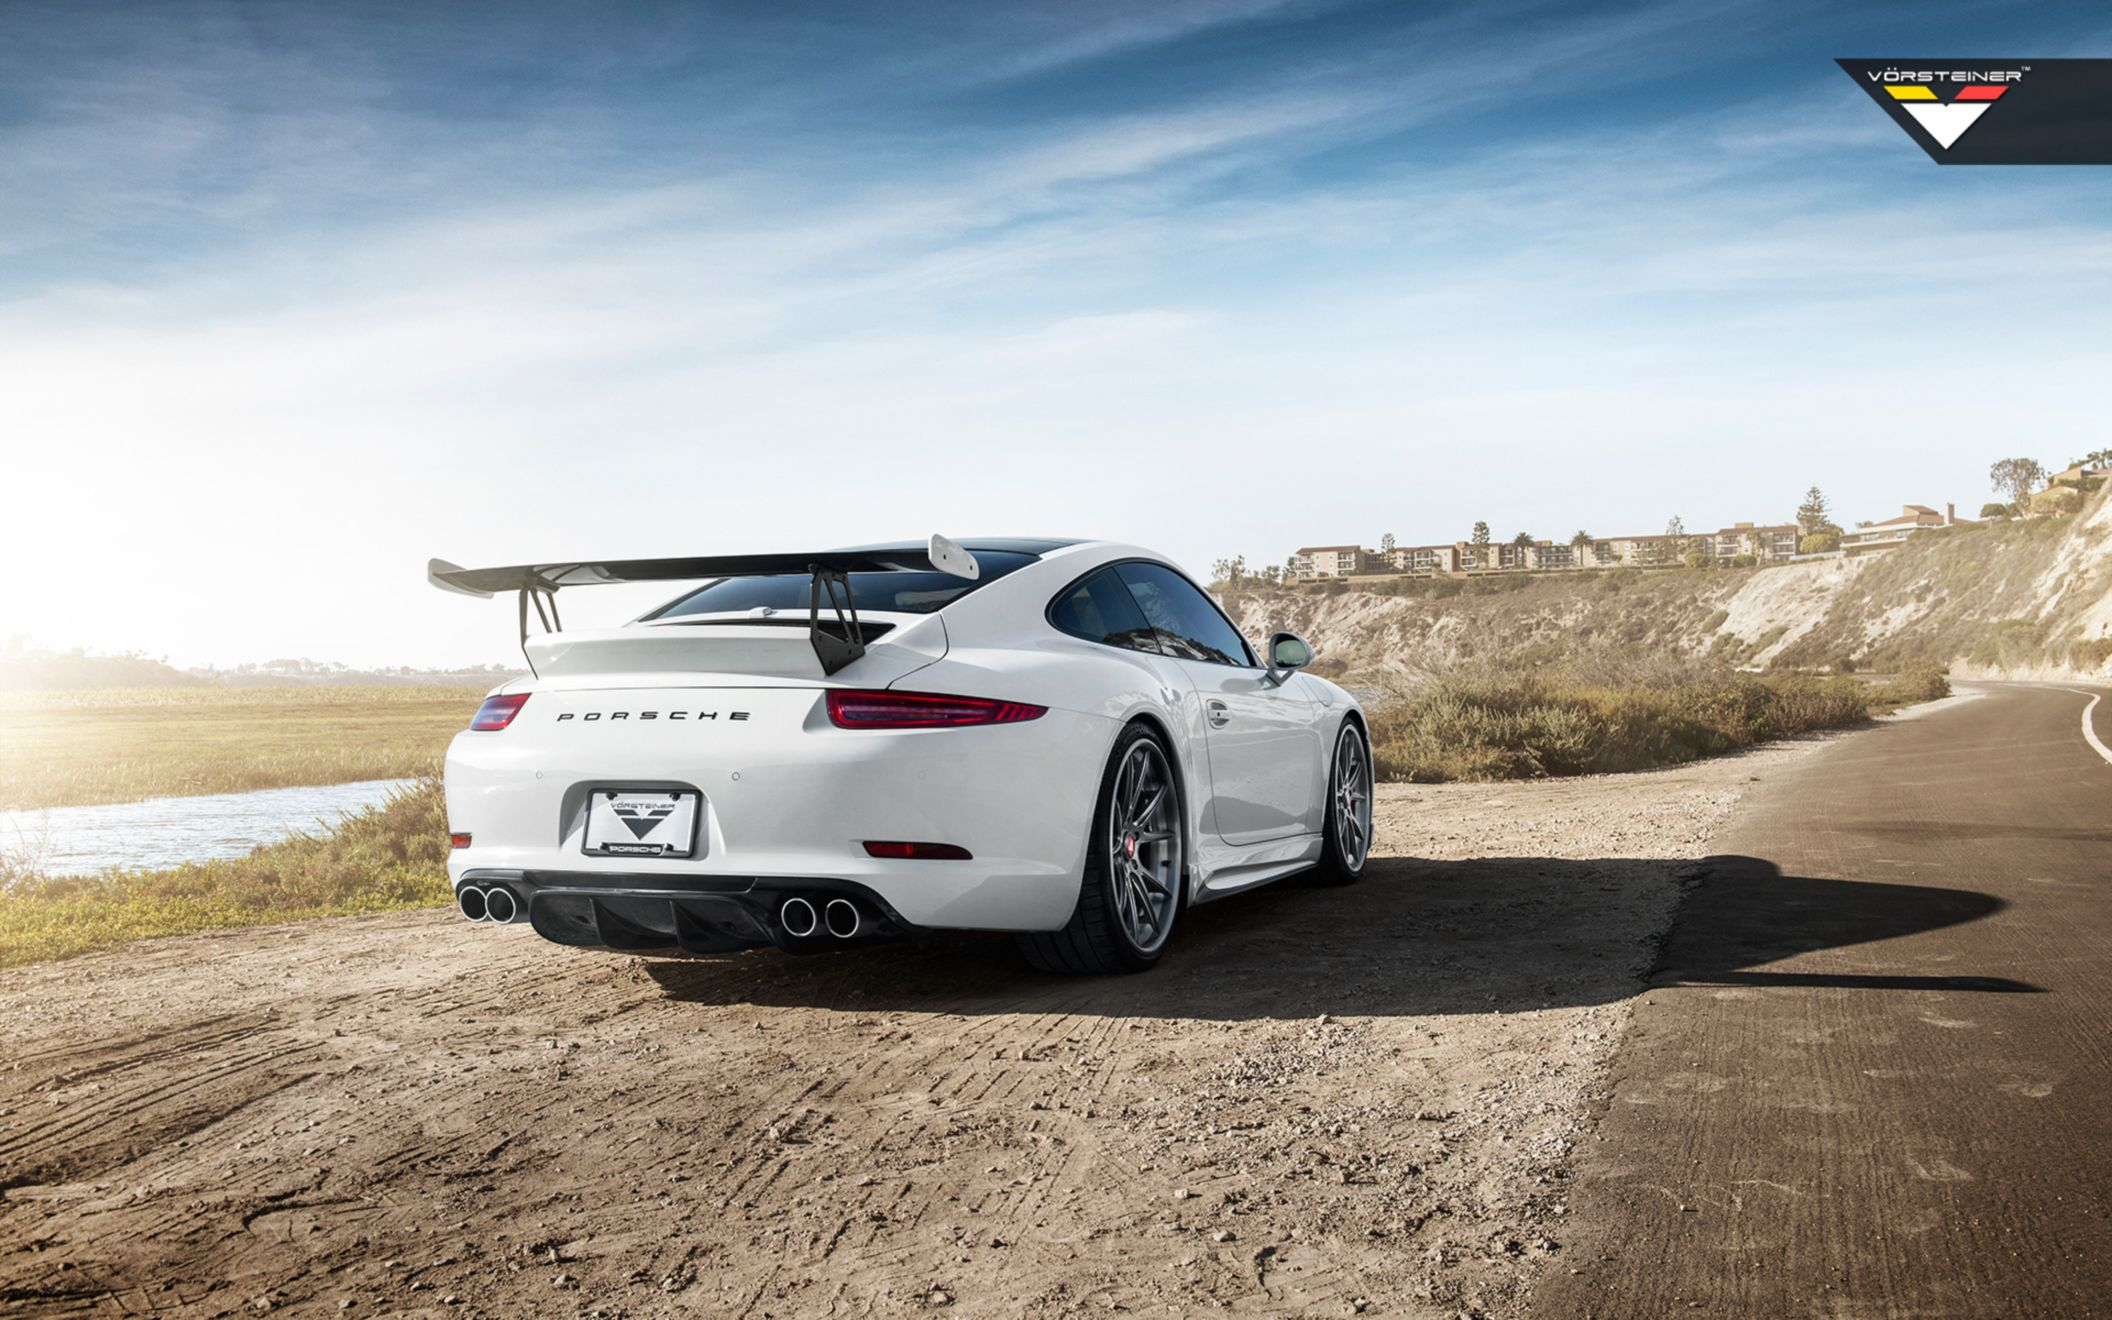 Download free HD Porsche 991 Carrera S Vorsteiner V GT Aero Program Wide Wallpaper, image